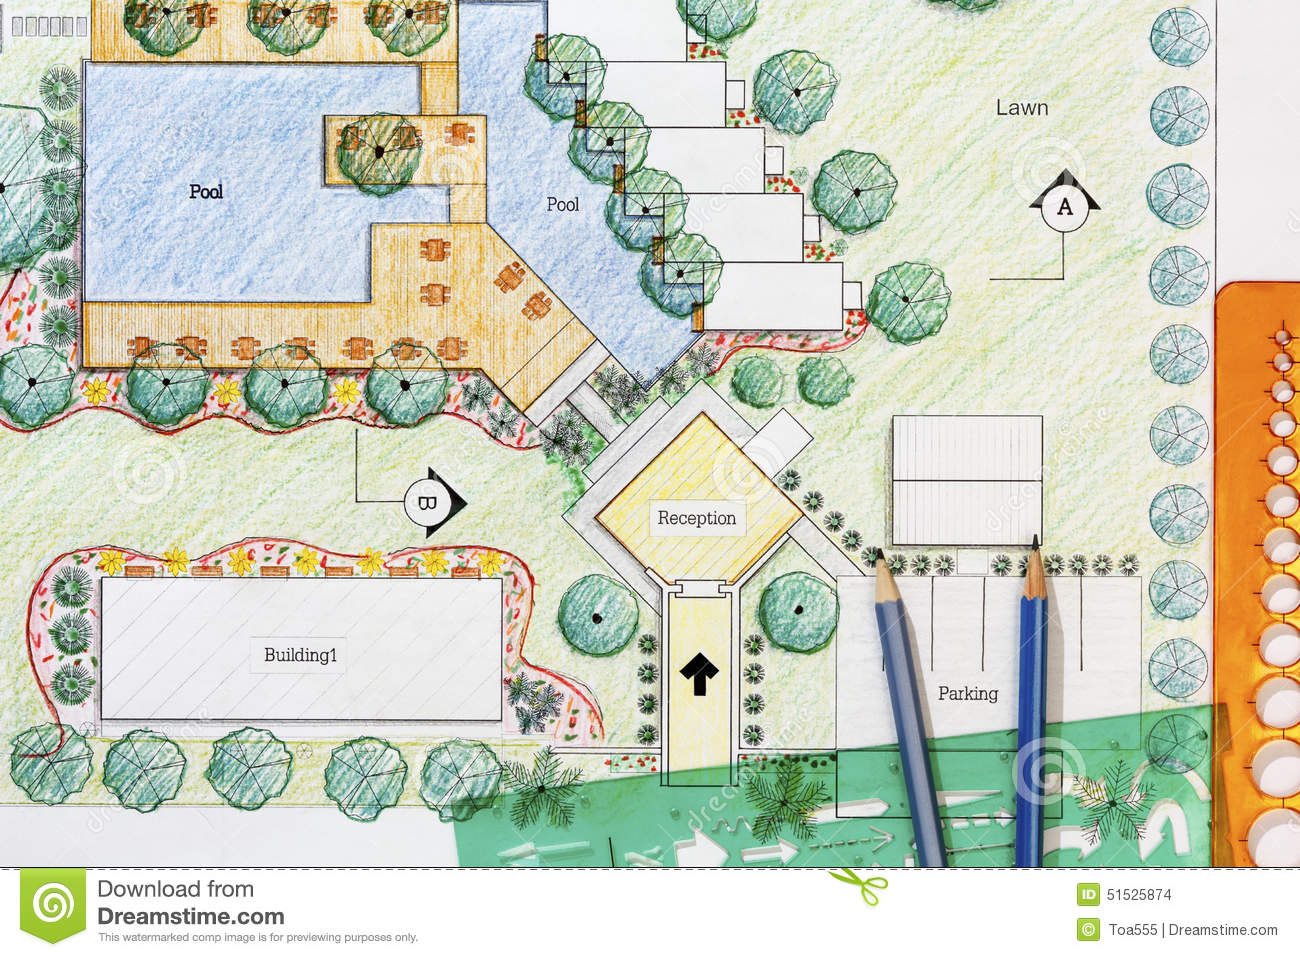 Download Landscape Architect Design Hotel Resort Plan Stock Photo